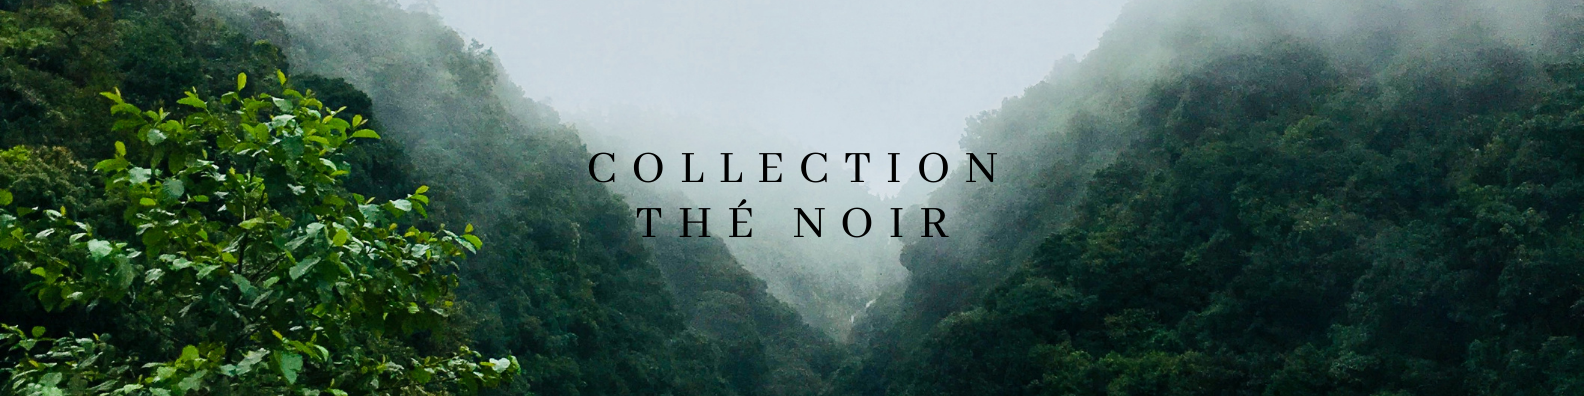 Collection_The_Noir.png